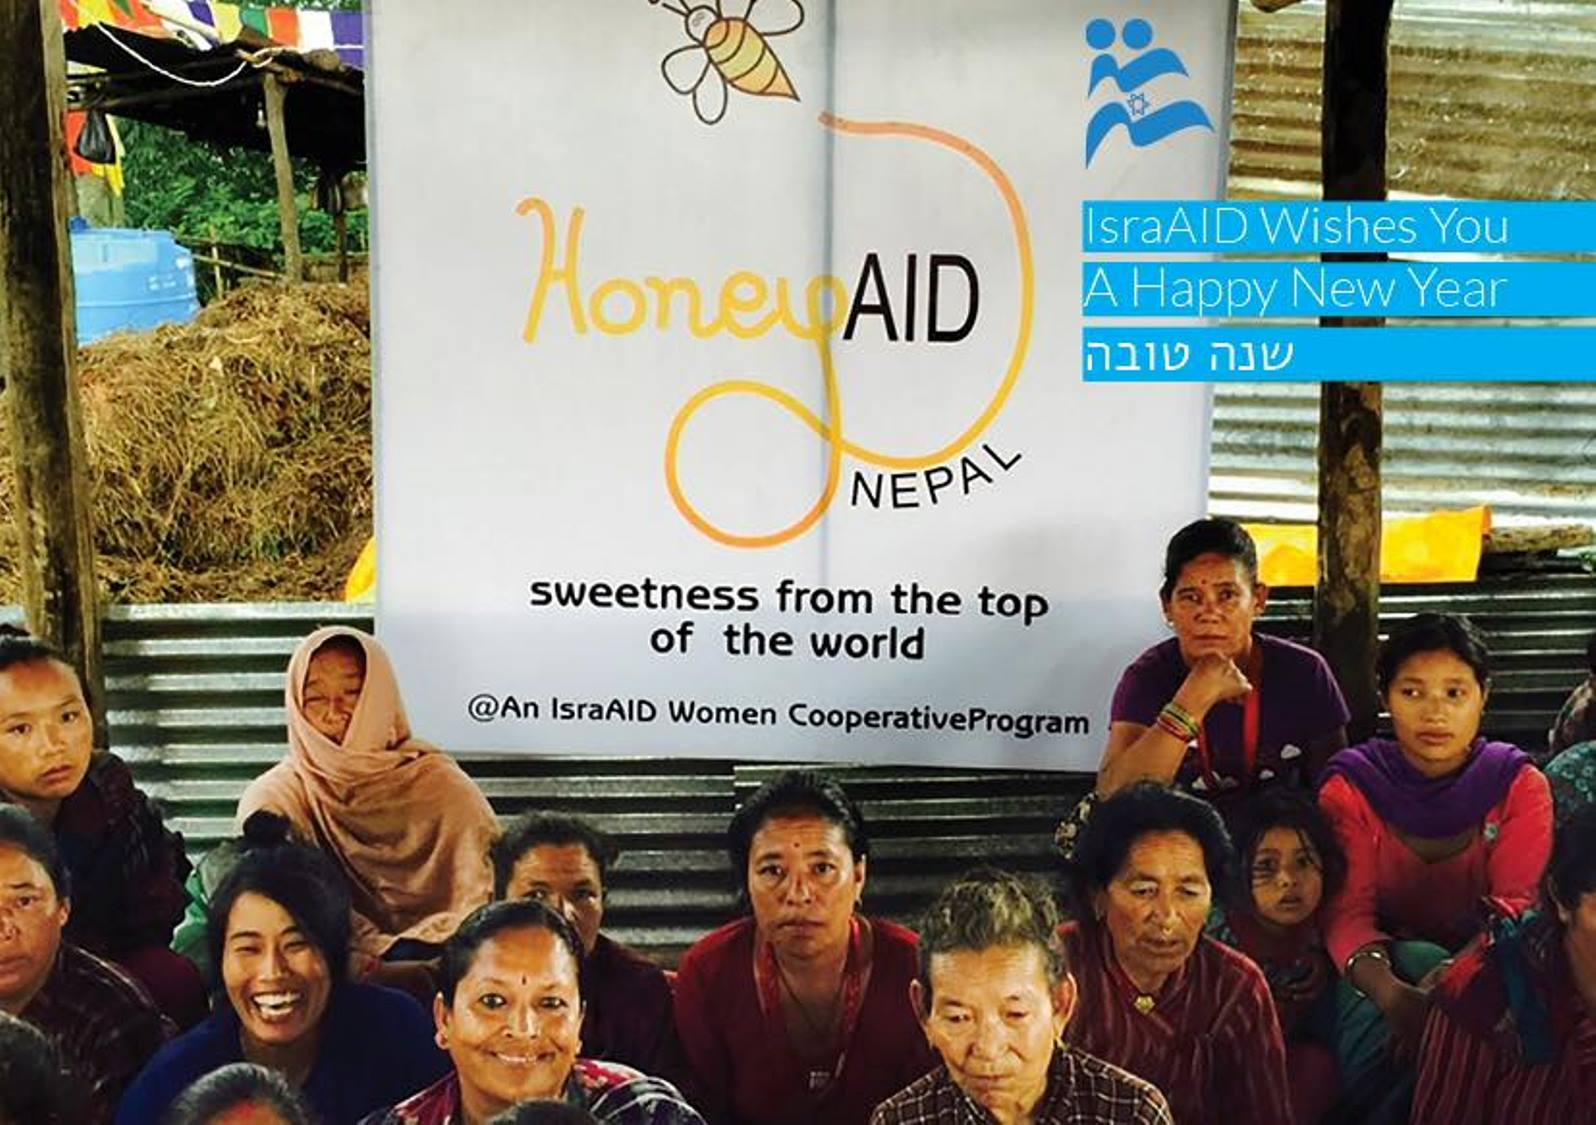 IsraAID's HoneyAID project will employ women in Nepal. Photo via Facebook